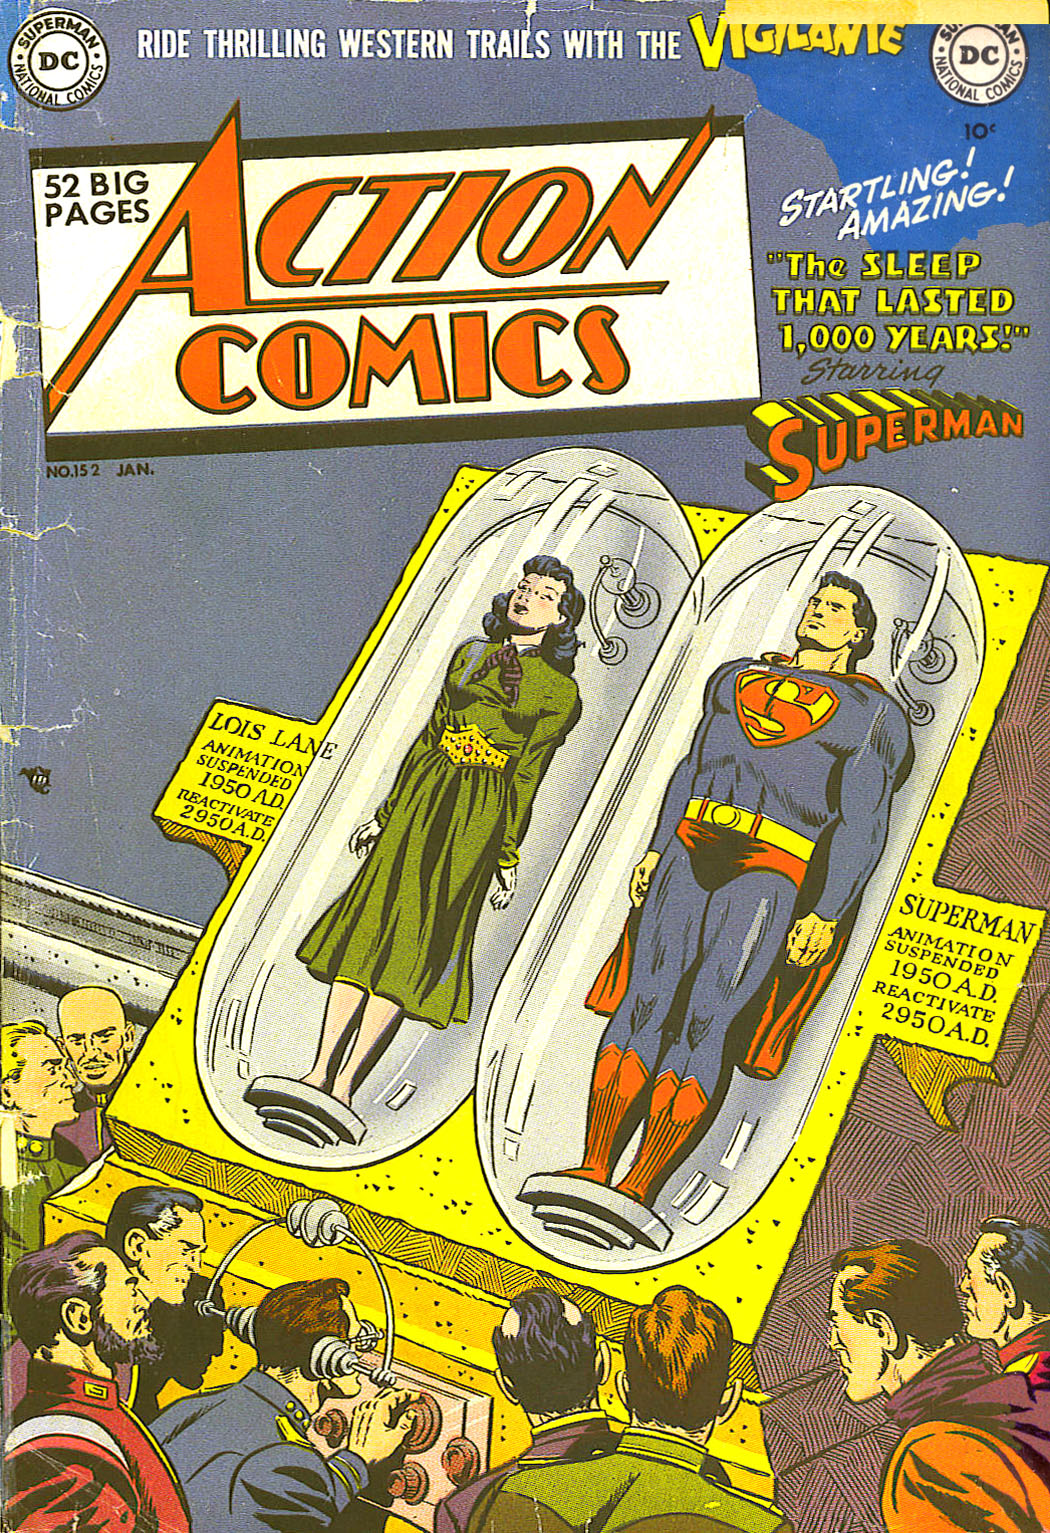 Action Comics (1938) 152 Page 1